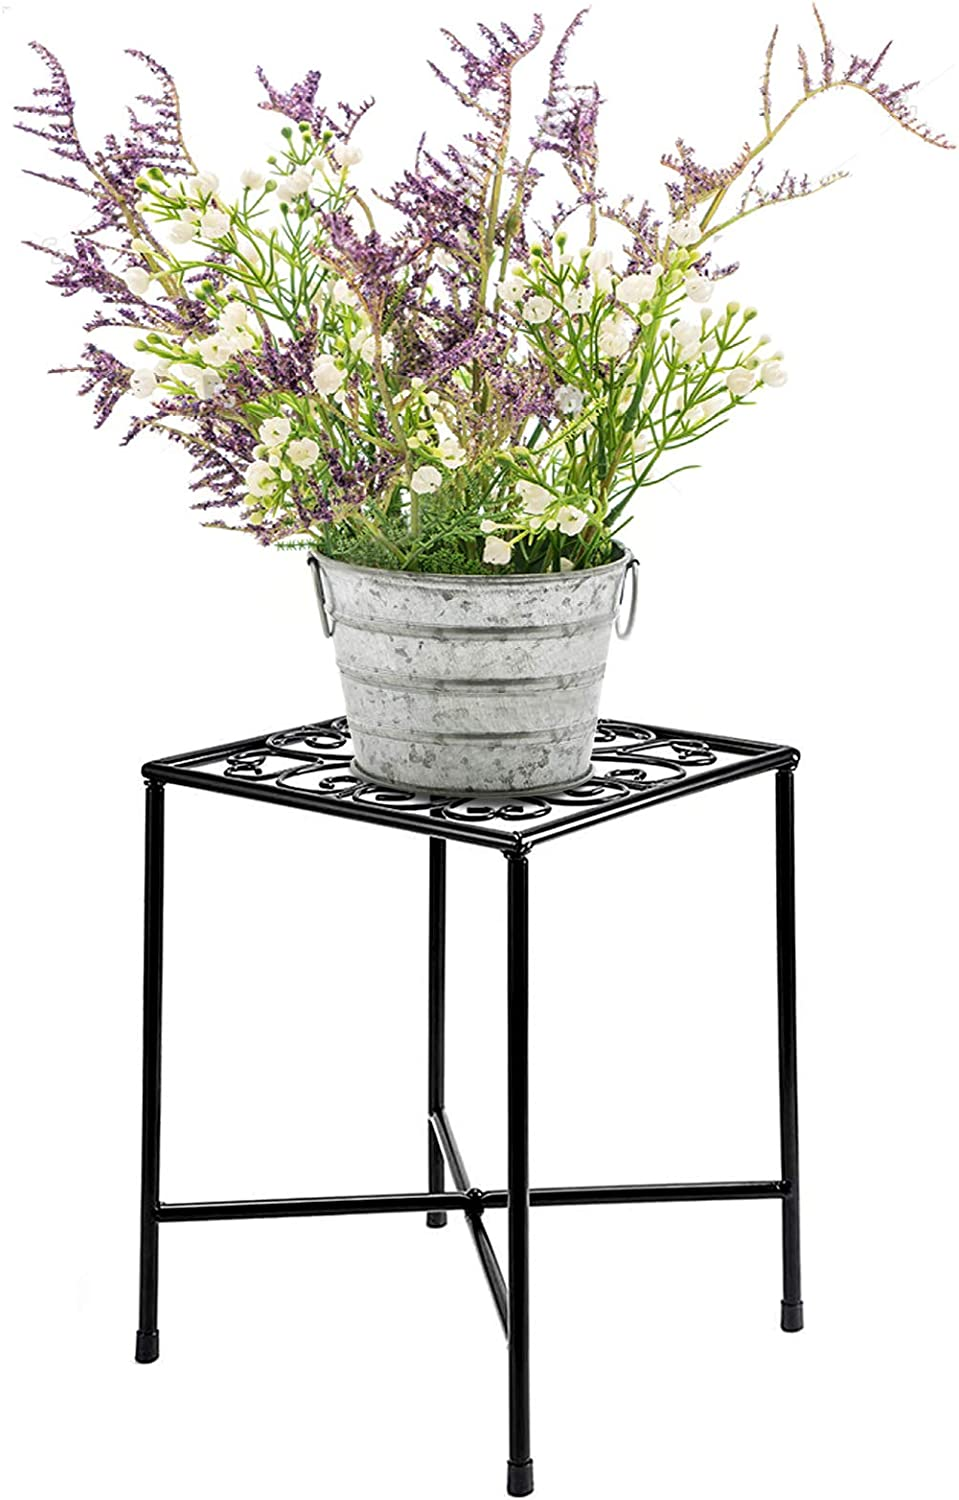 1Pcs Metal Plant Stand, Elegantly Designed Art Iron Flower Stand for Decor Plant Corner, Durable Rust-Resistant Black Modern Plant Stand for Home Garden Display Greenery - Easy Assembly